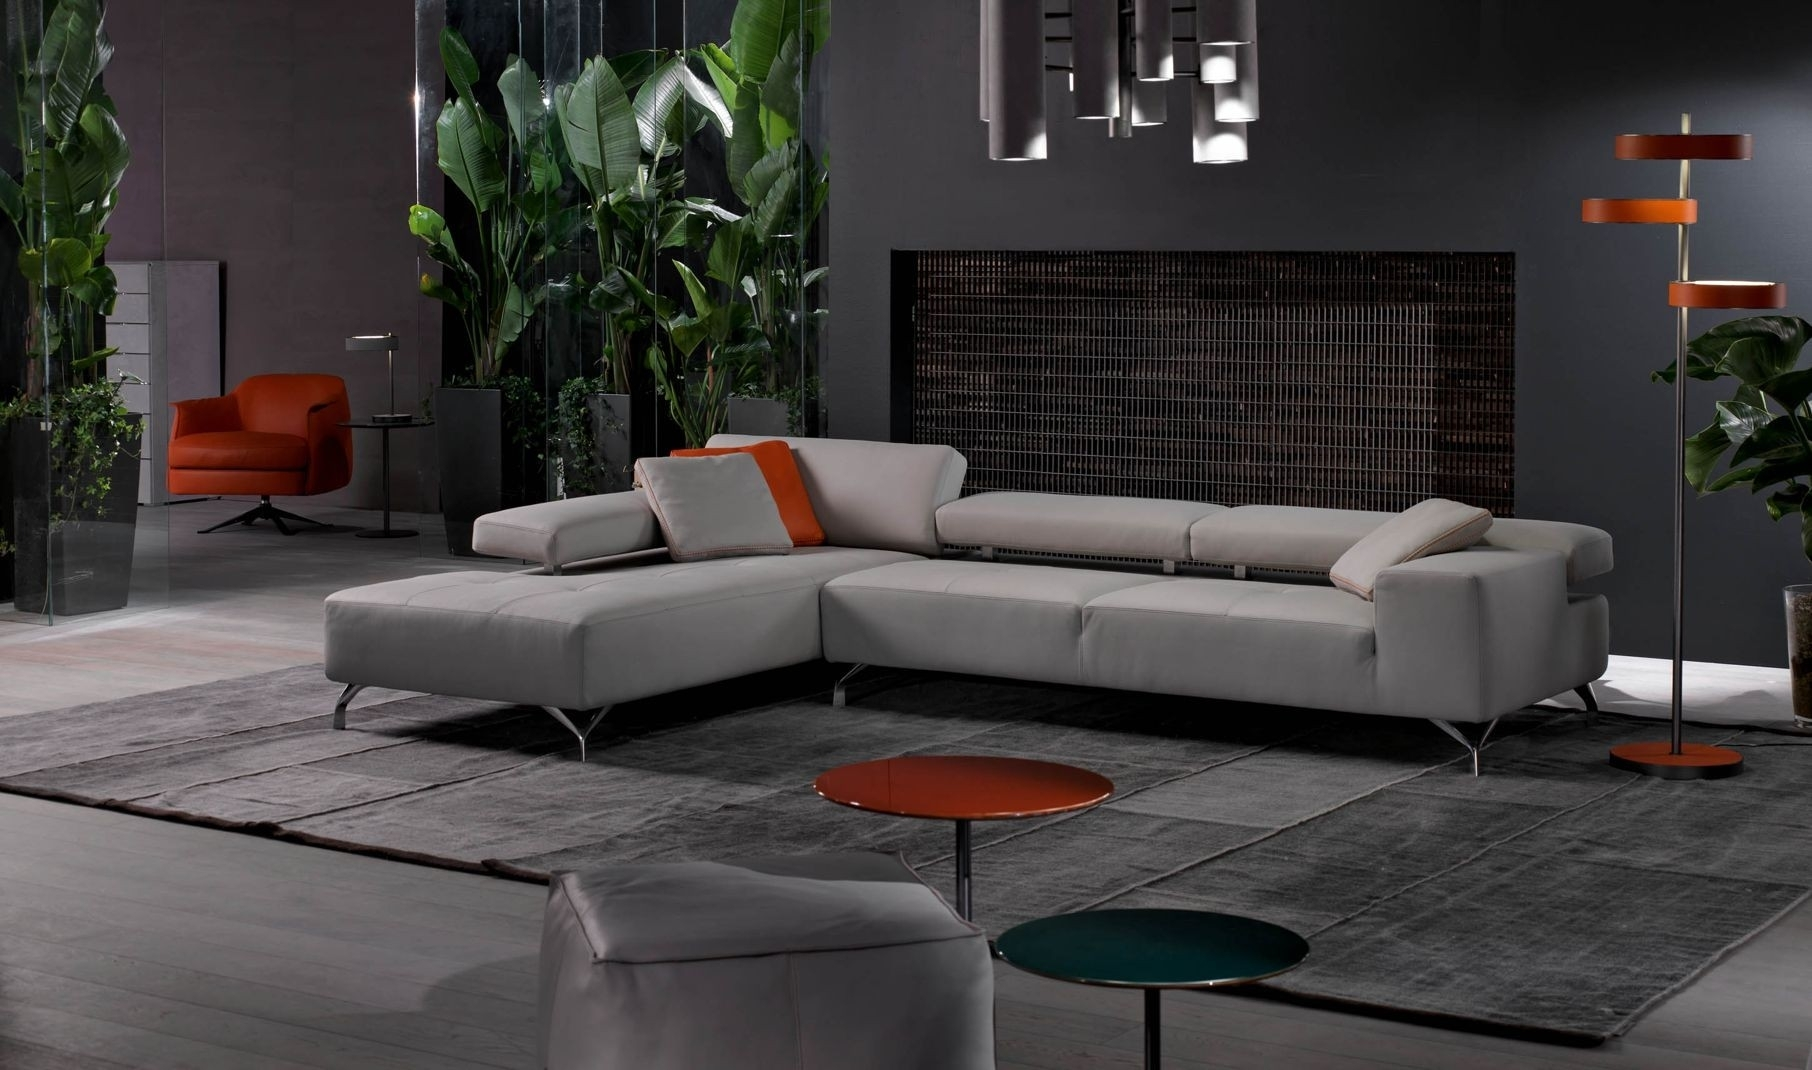 Miami Modern Sectional Sofa | Cierre Imbottiti For Miami Sectional Sofas (View 5 of 10)